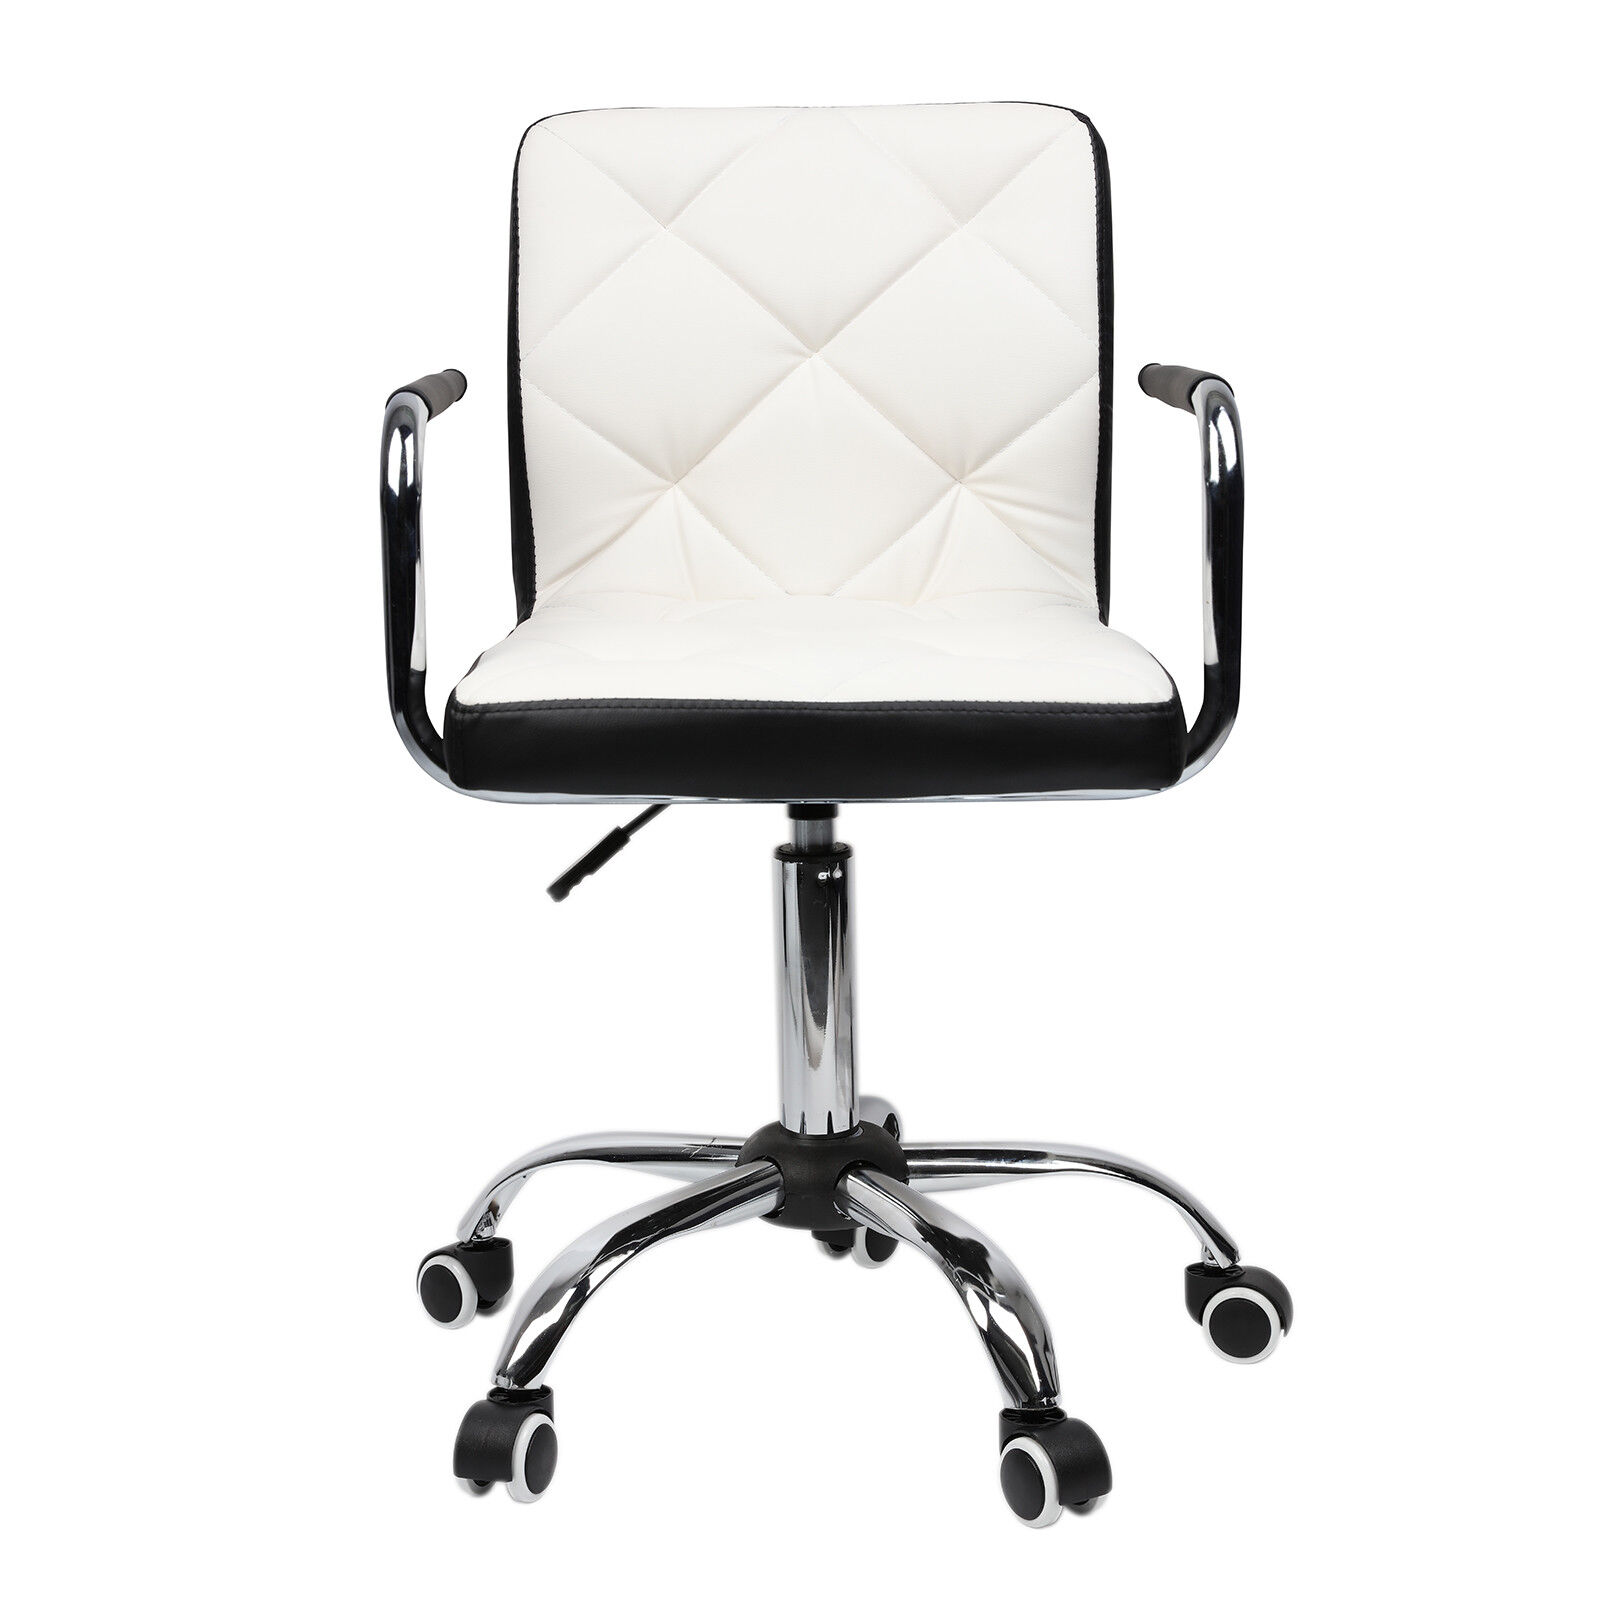 modern pu leather office desk computer chair seat swivel barstool mixed color 643665838504 ebay. Black Bedroom Furniture Sets. Home Design Ideas